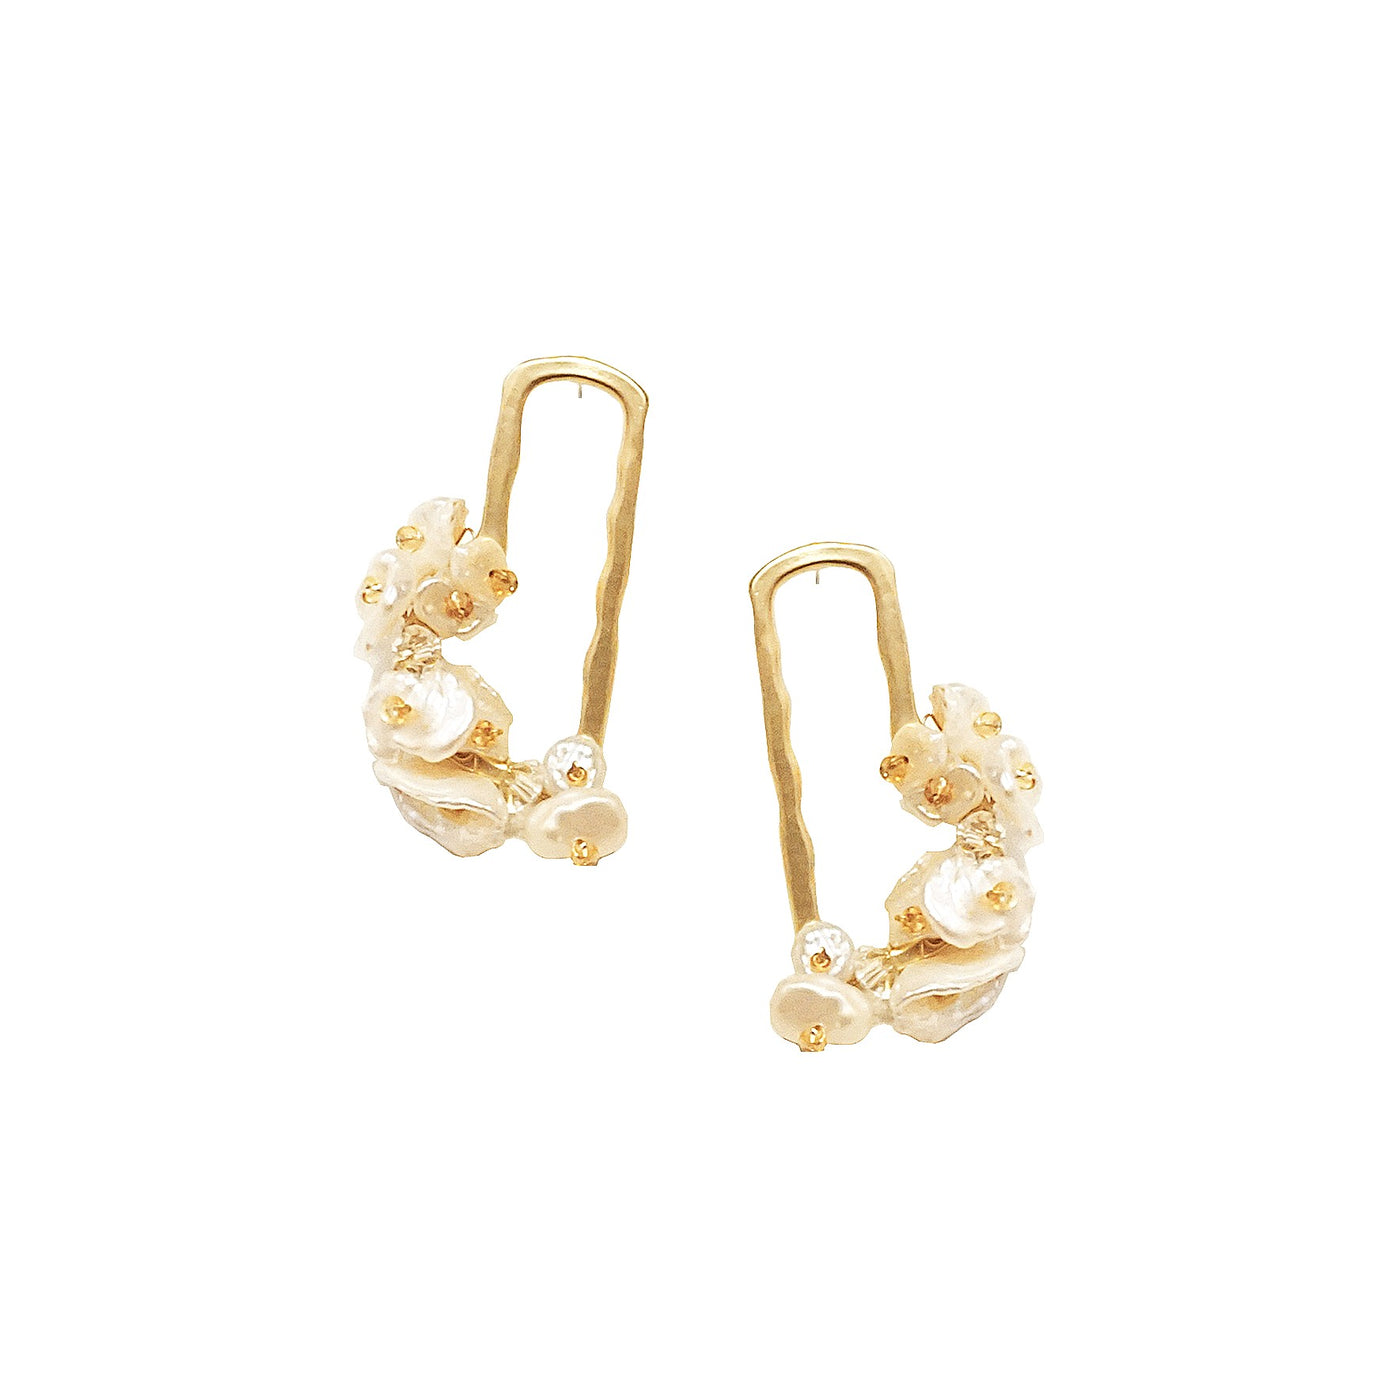 gold rectangular drop earrings with baroque pearl flowers displayed on white background